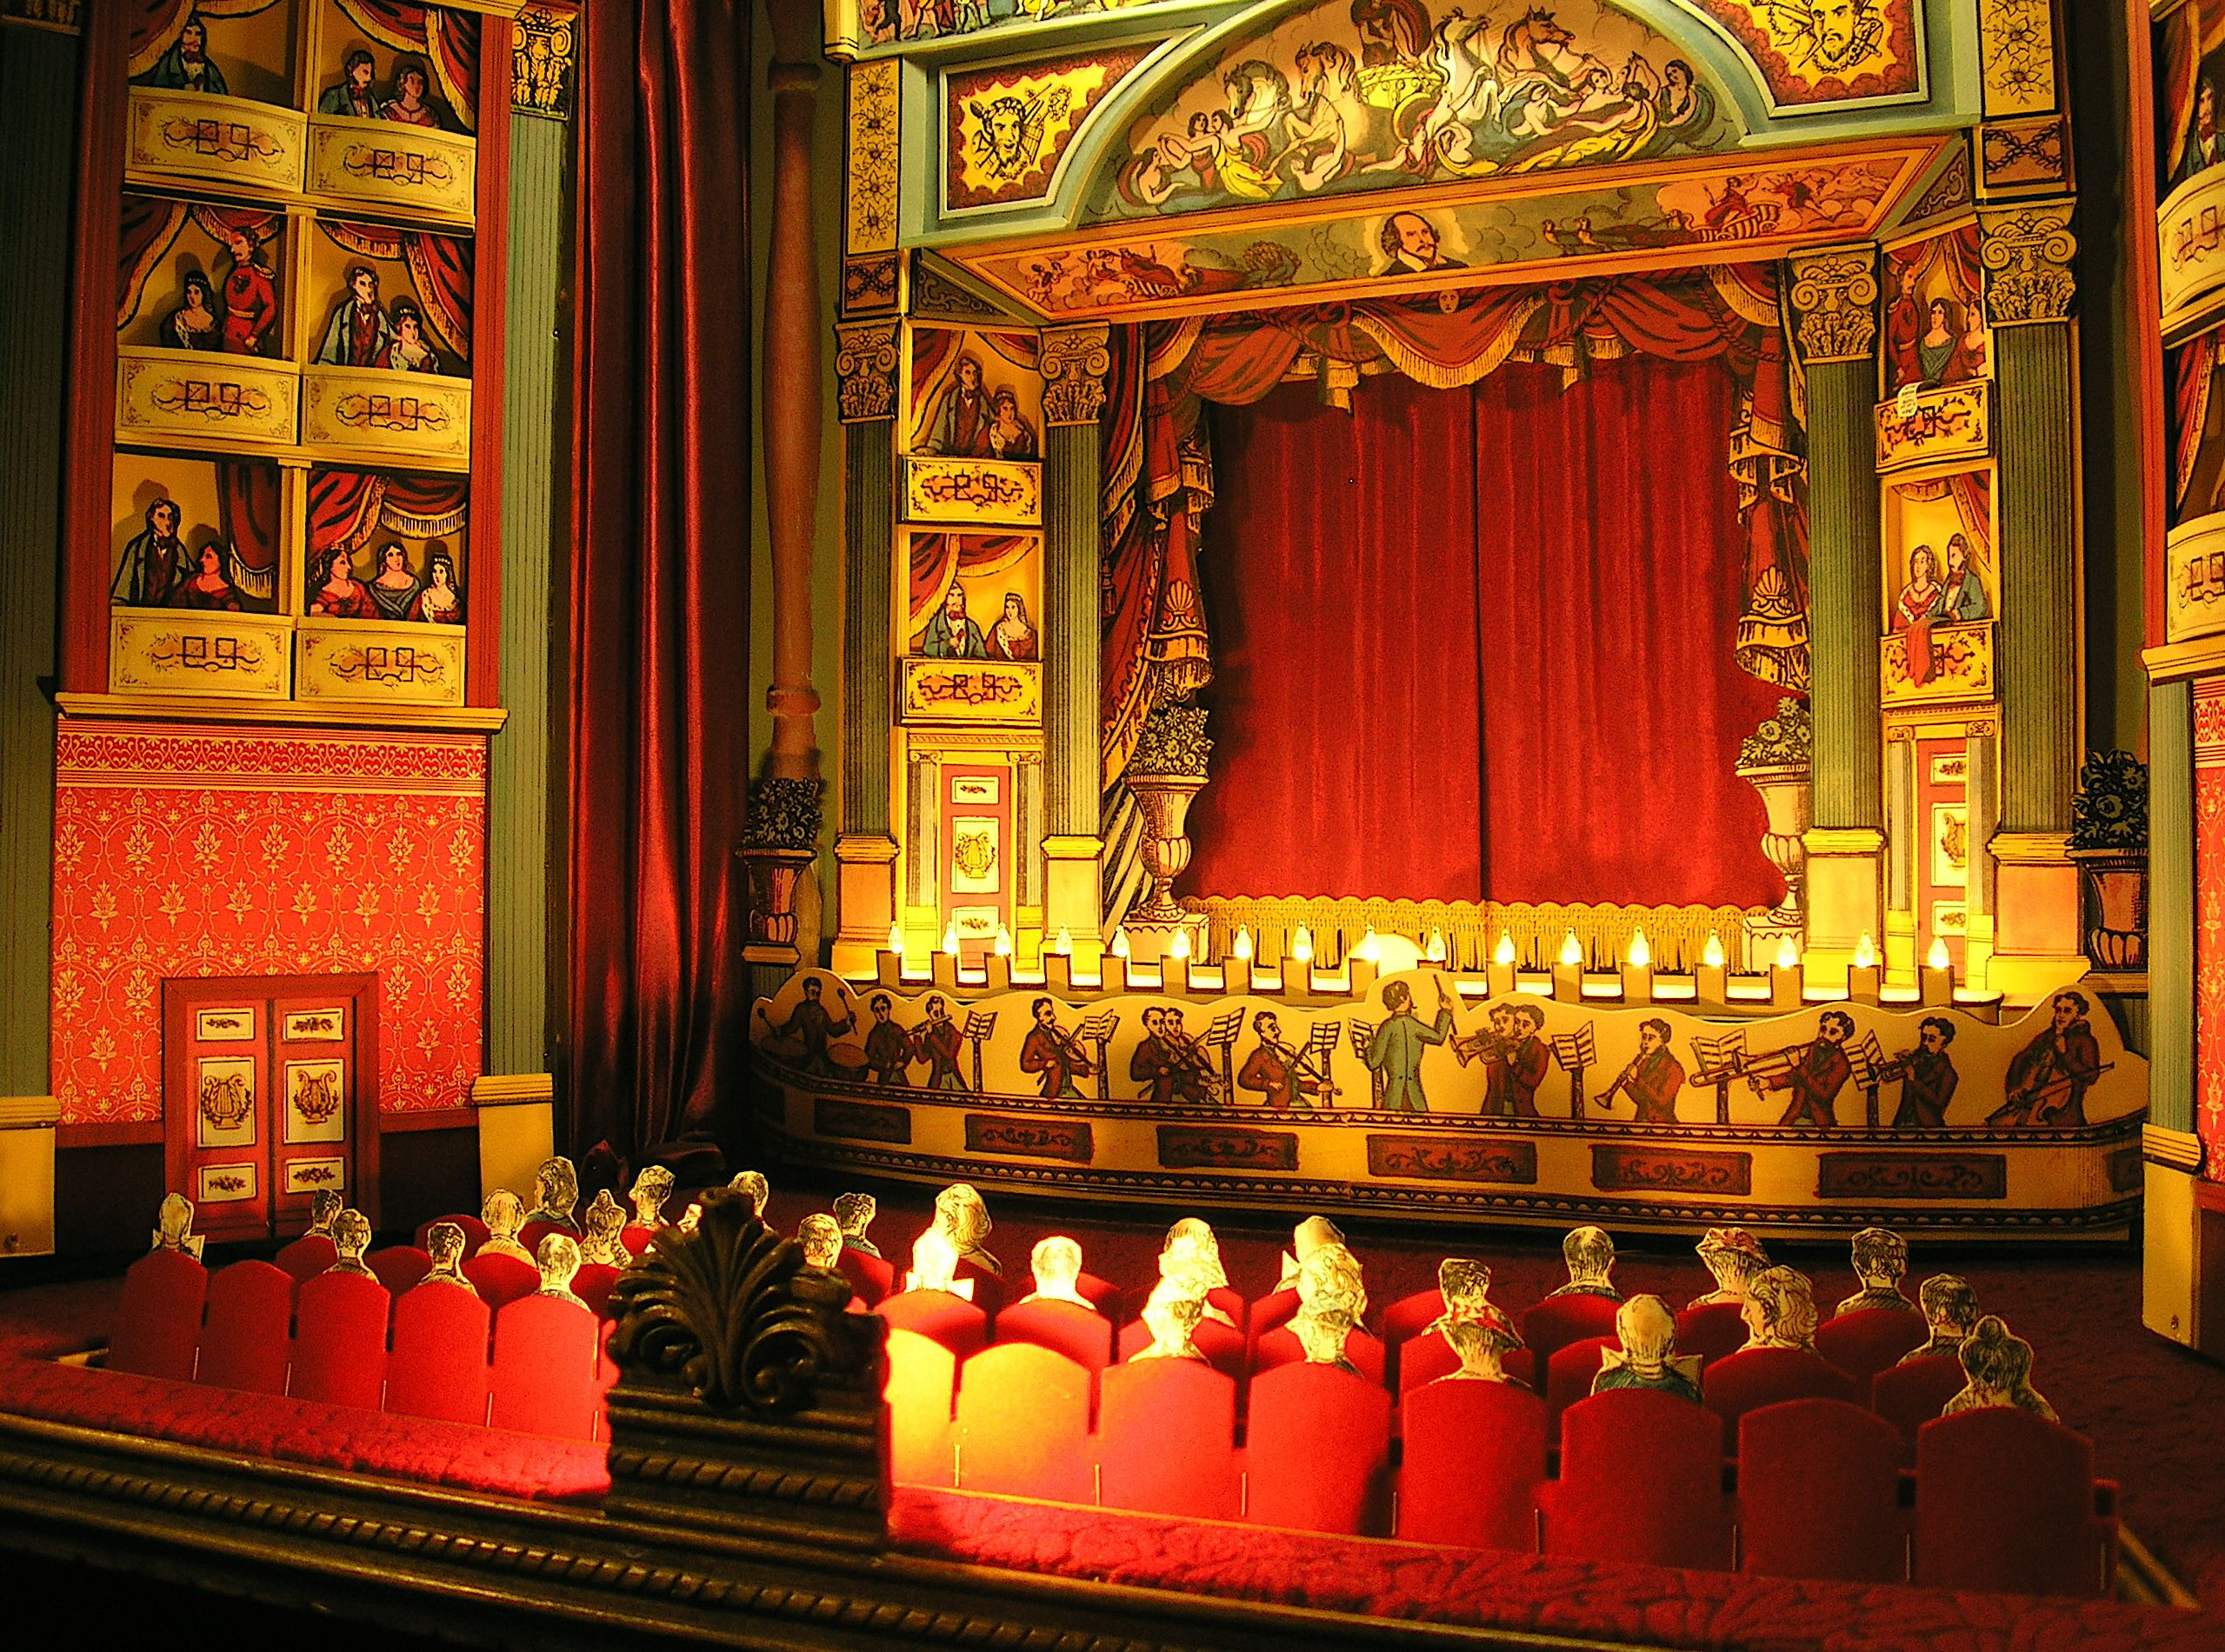 Awesome Toy Theatre Interior Behind The Curtains Is A Complete